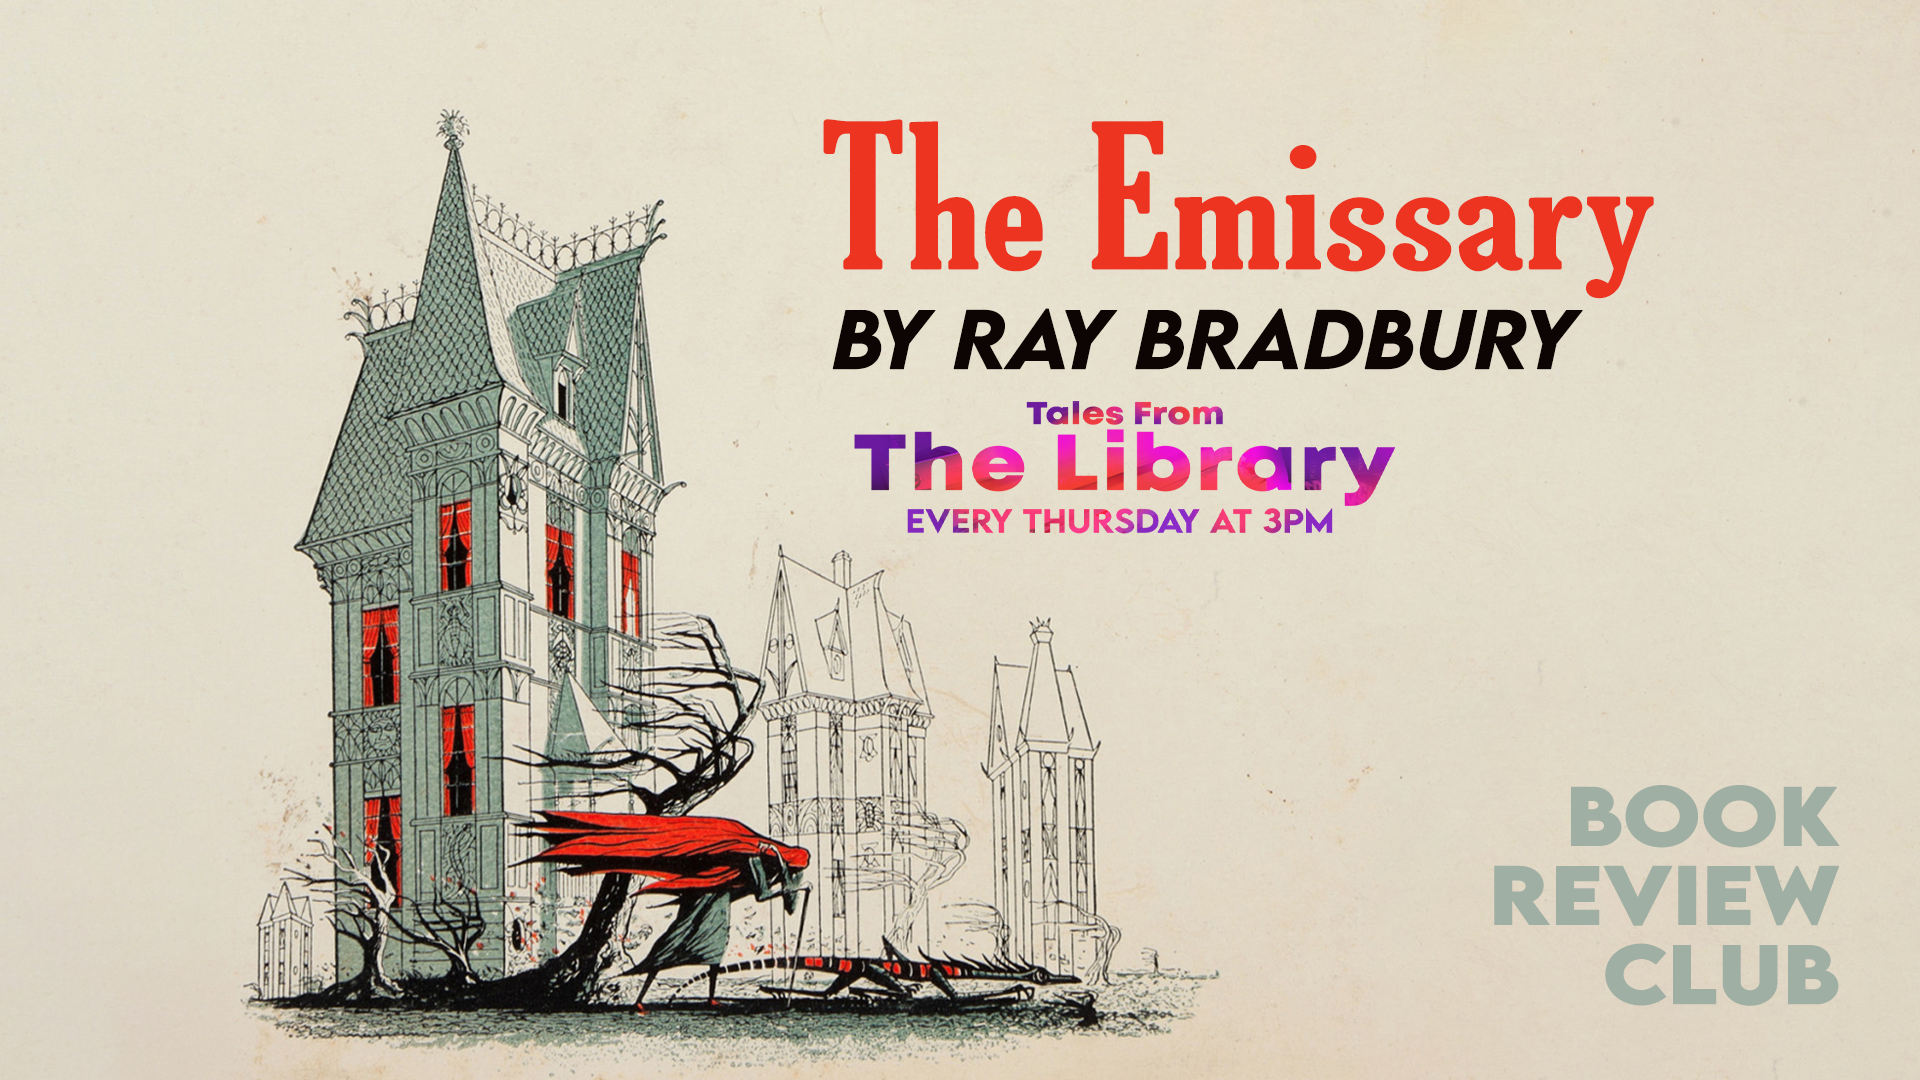 Tales From The Library - The Emissary